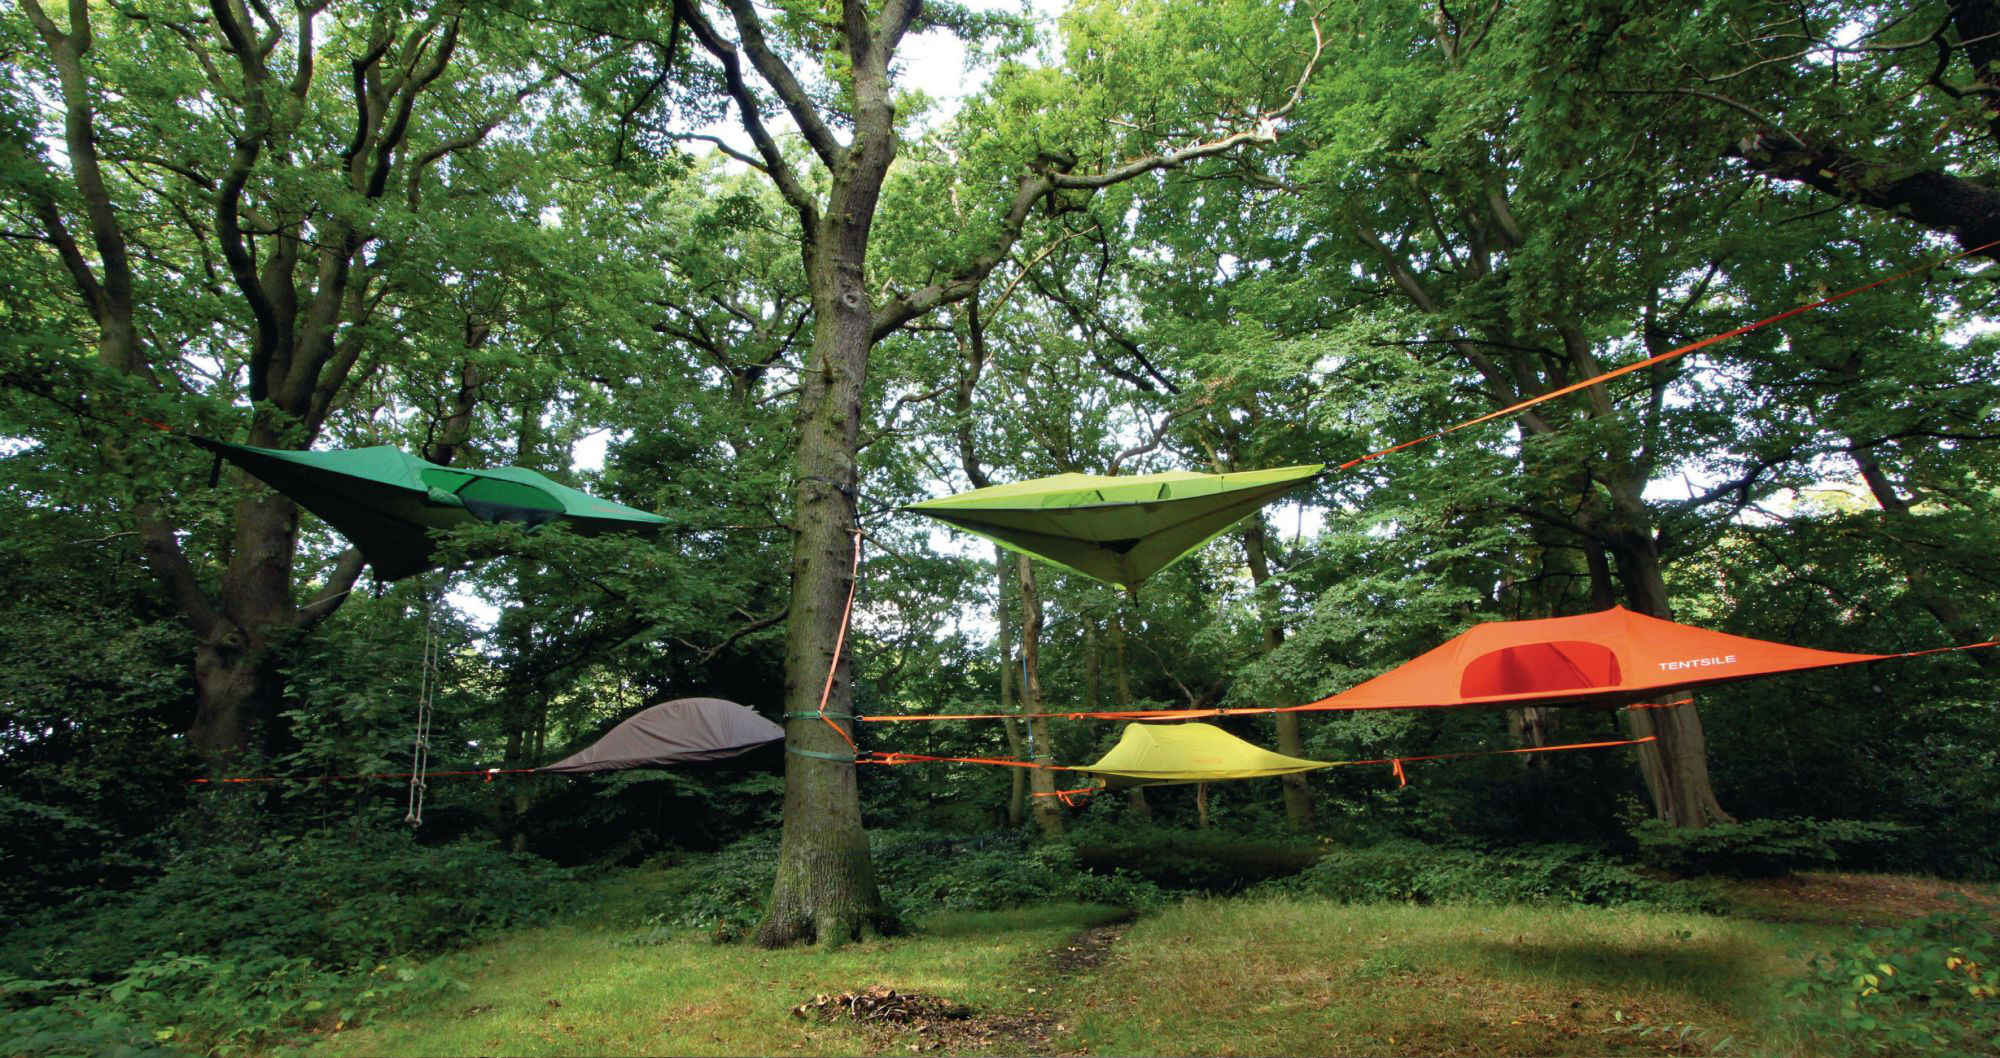 Hanging Hammock Chair From Tree